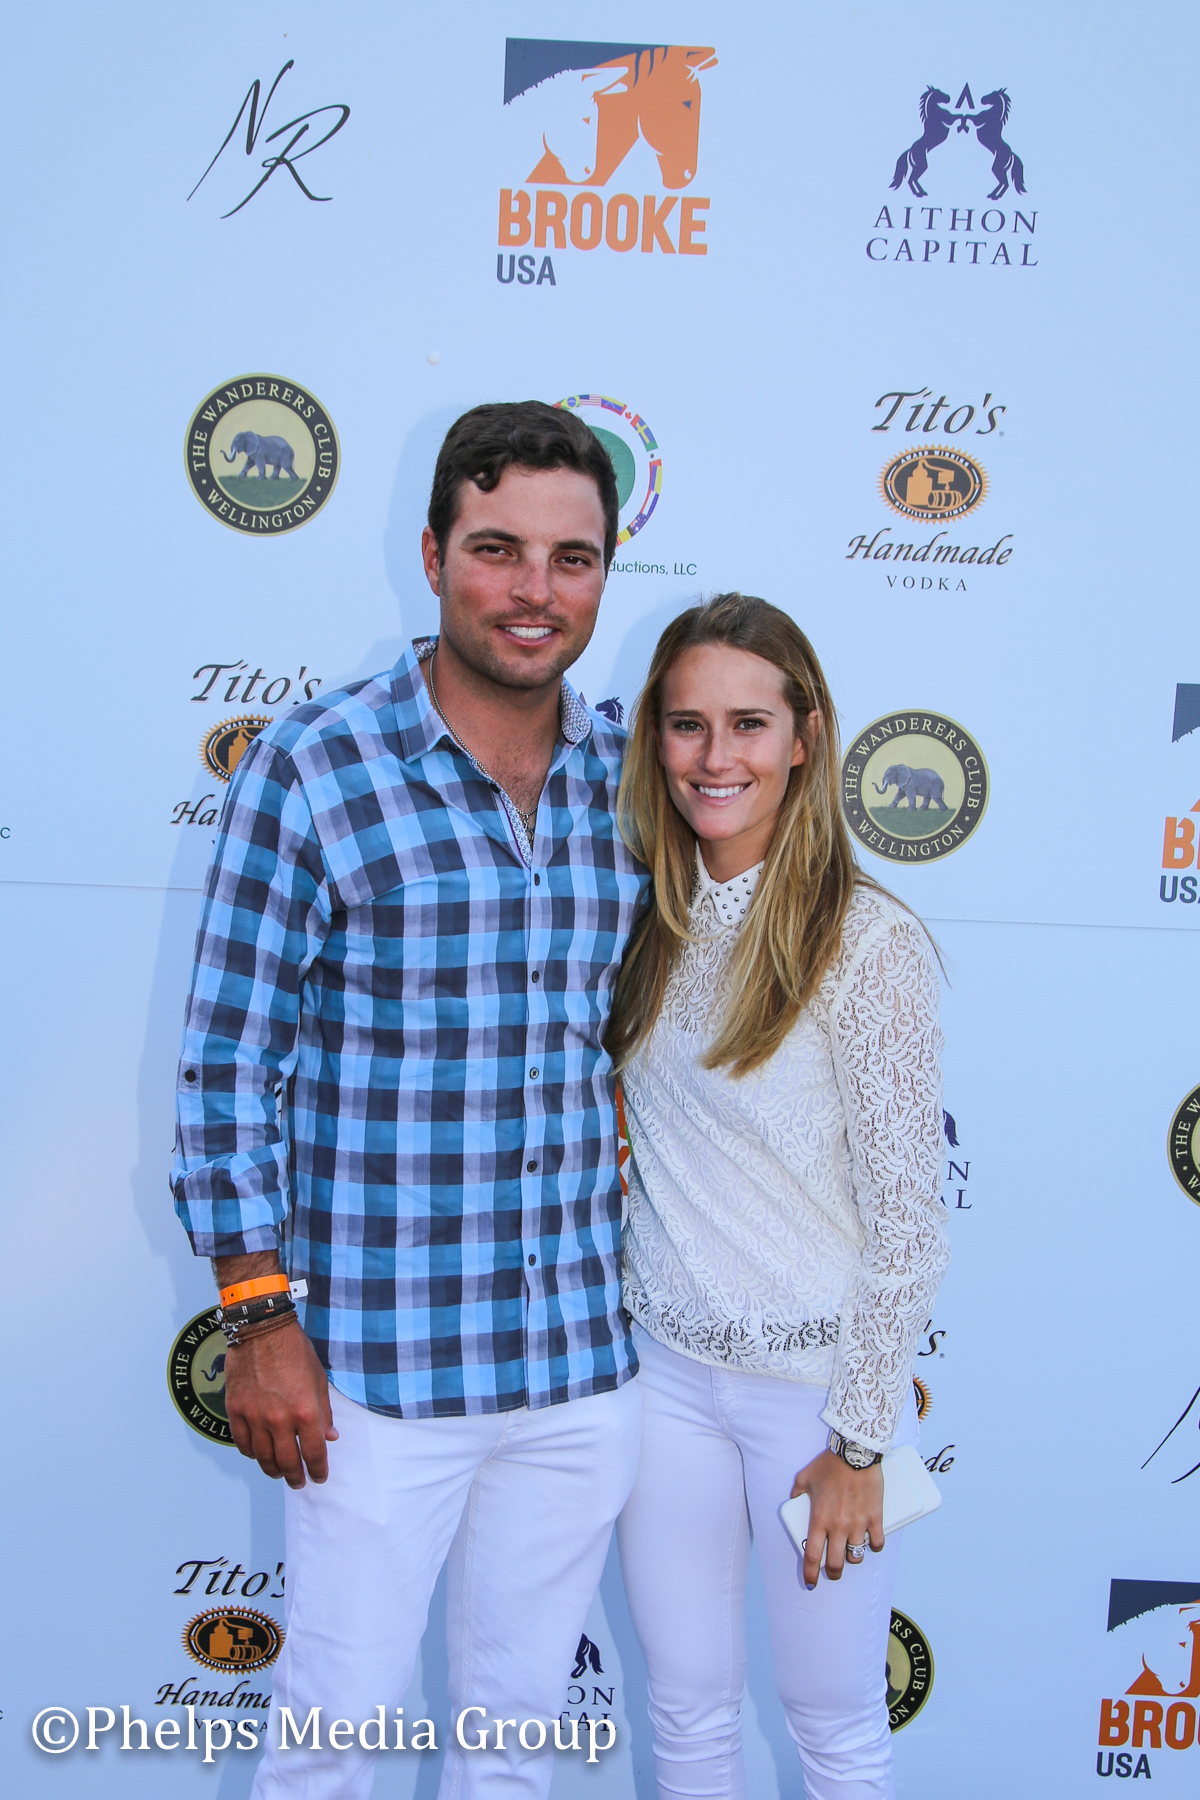 Daniel Bluman and Girlfriend; Nic Roldan's 2nd Annual Sunset Polo & White Party, FL, by Phelps Media.jpg